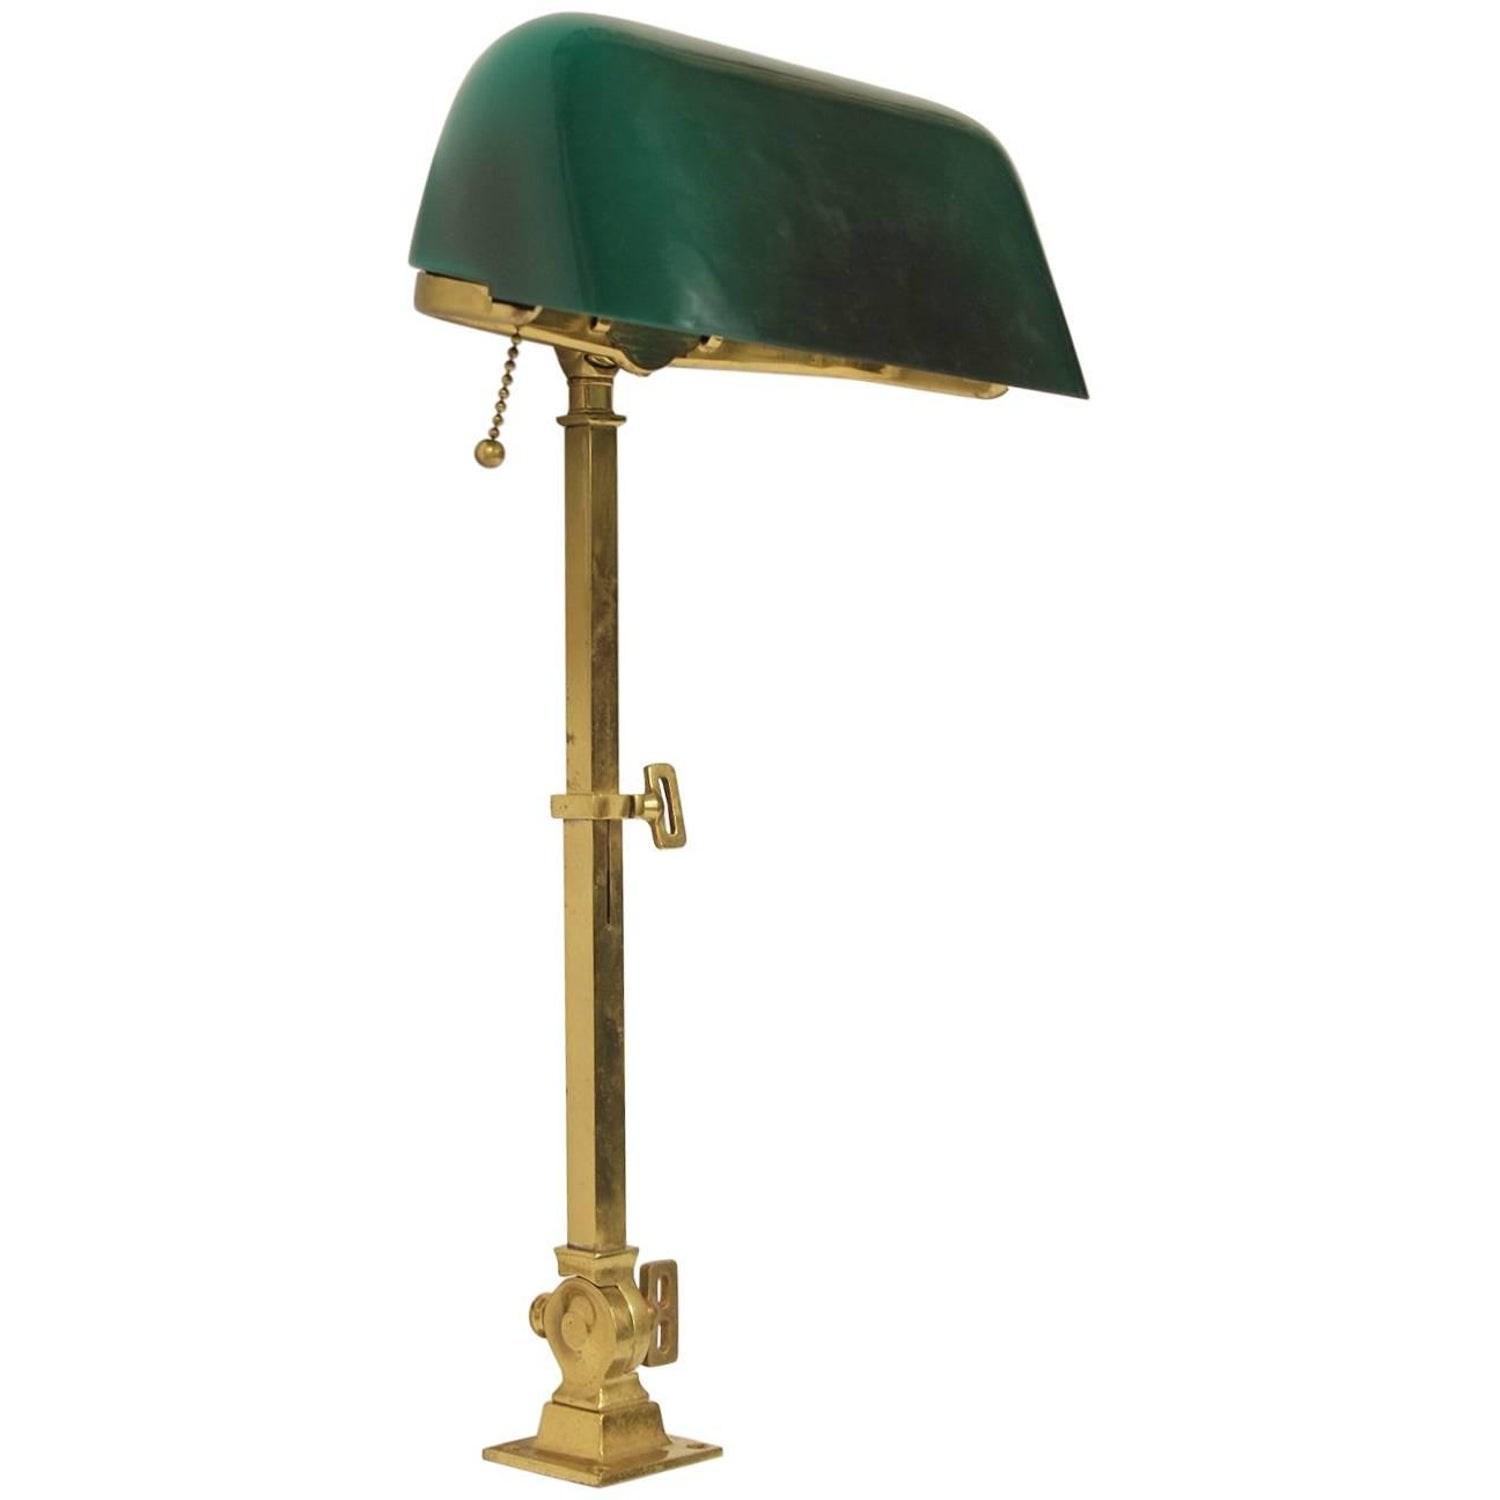 Antique desk lamp in patinated brass by aladdin co for sale at rare 1920s american emeralite brass adjustable desk lamp by hg mcfaddin co geotapseo Image collections